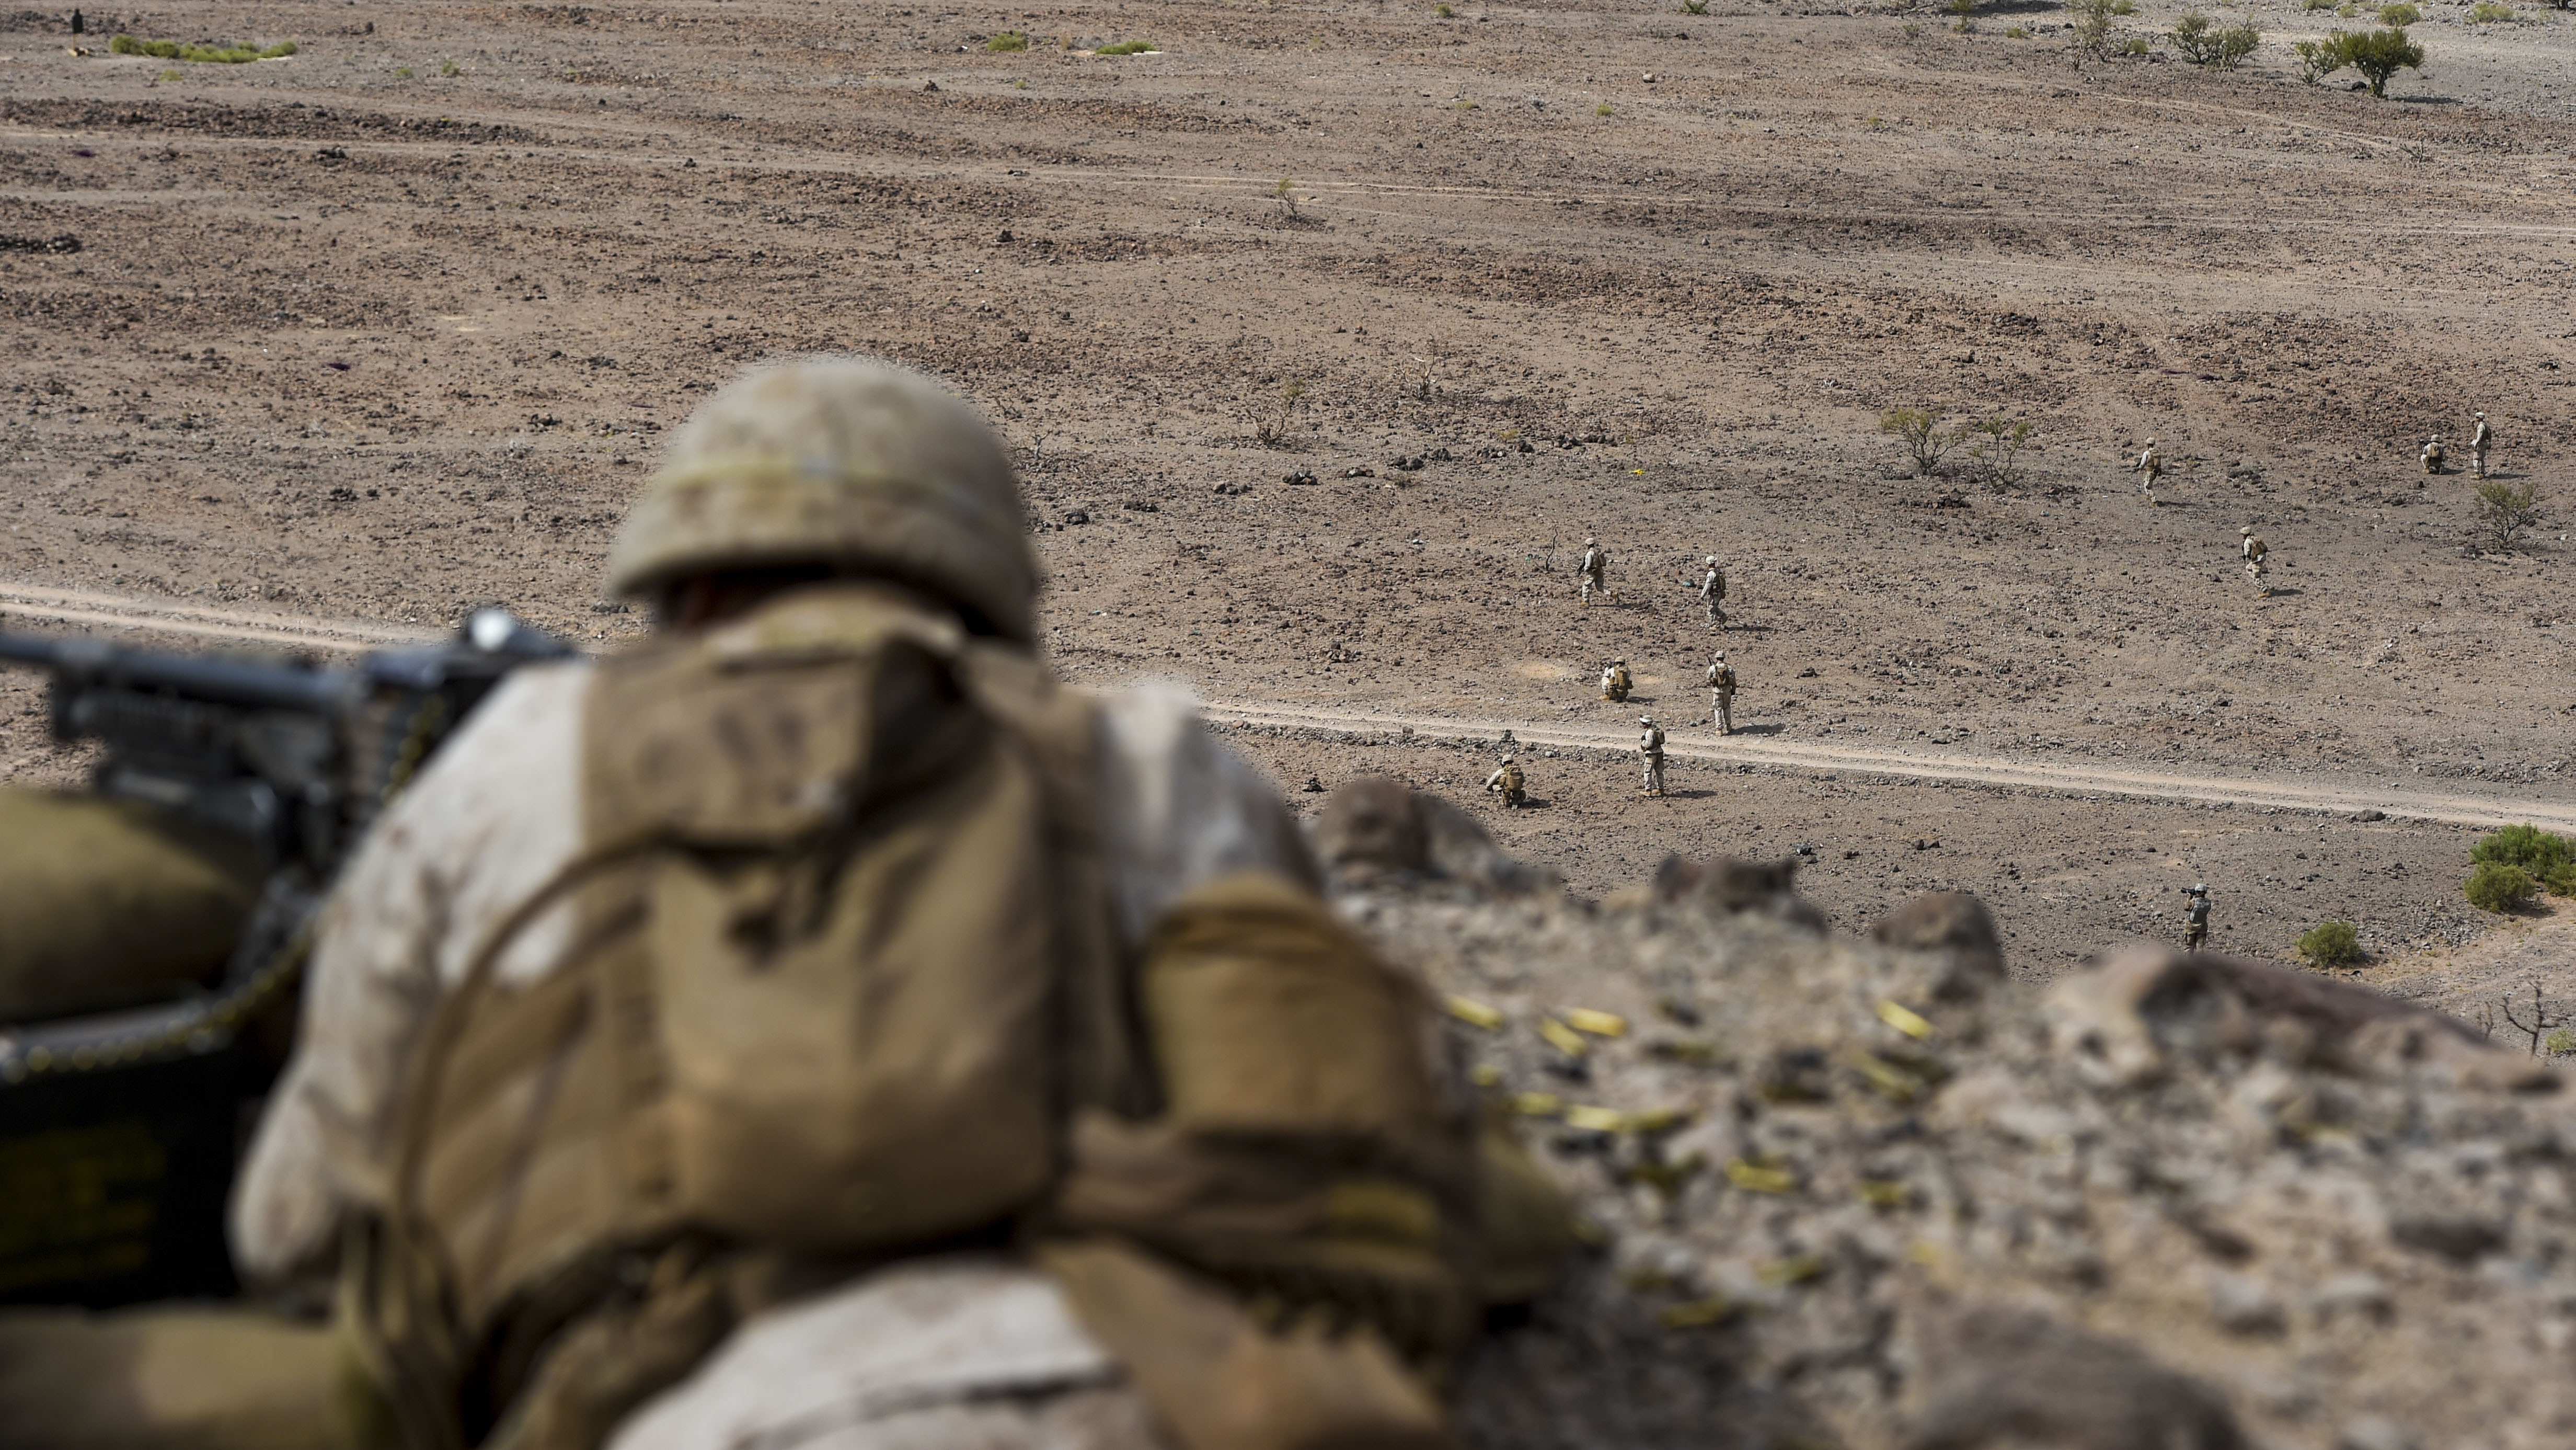 A U.S. Marine machine gunner with the 15th Marine Expeditionary Unit overlooks a live-fire combat rehearsal during Alligator Dagger at Arta Range, Djibouti, Dec. 17, 2017. Alligator Dagger, led by Naval Amphibious Force, Task Force 51/5th Marine Expeditionary Brigade, is a dedicated, bilateral combat rehearsal that combines U.S. and French forces to practice, rehearse and exercise integrated capabilities available to U.S. Central Command both afloat and ashore. (U.S. Air Force photo by Staff Sgt. Timothy Moore)